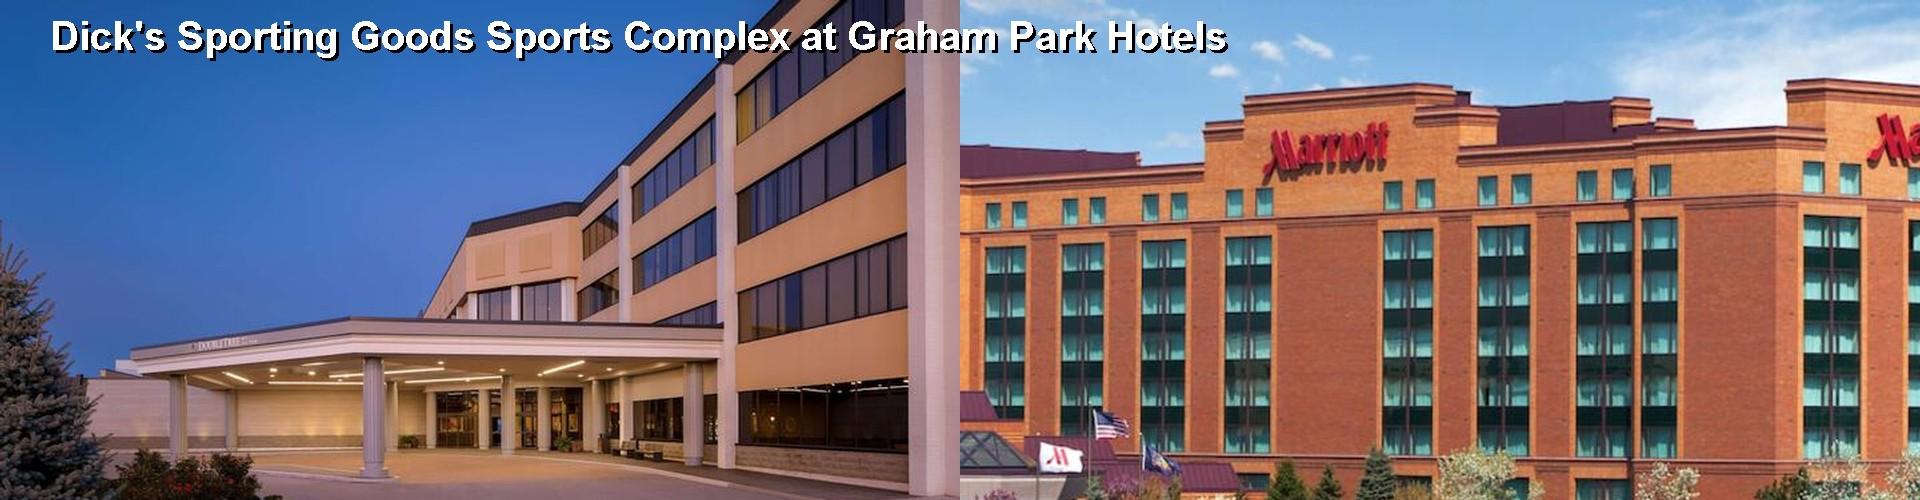 5 Best Hotels near Dick's Sporting Goods Sports Complex at Graham Park